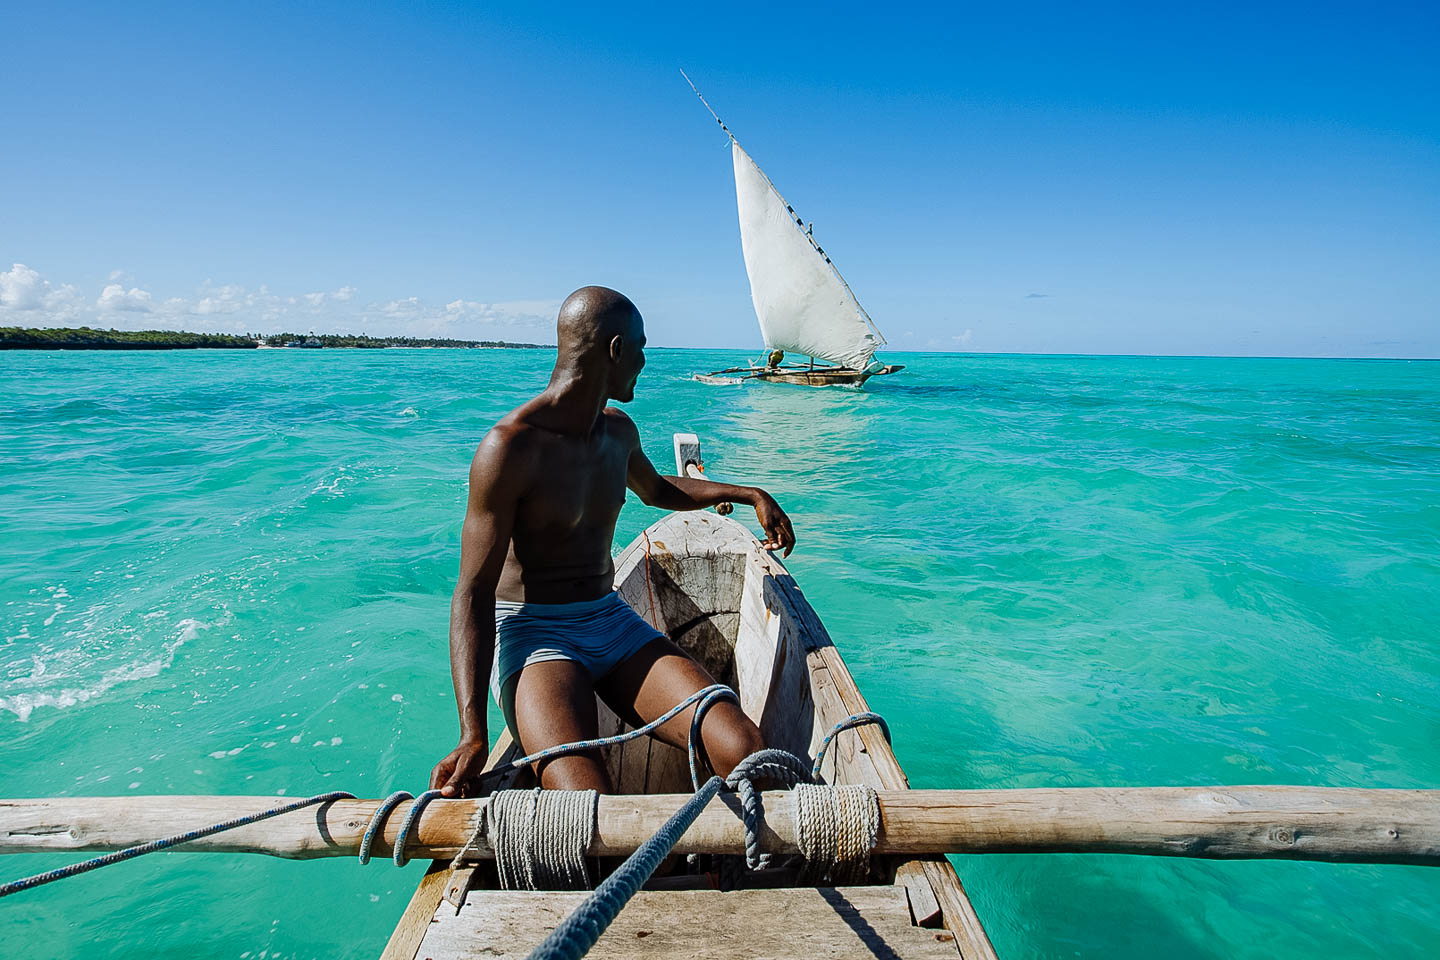 Zanzibar Dhow Sailing Sea Sunny Boat Cruise Indian Ocean Islands